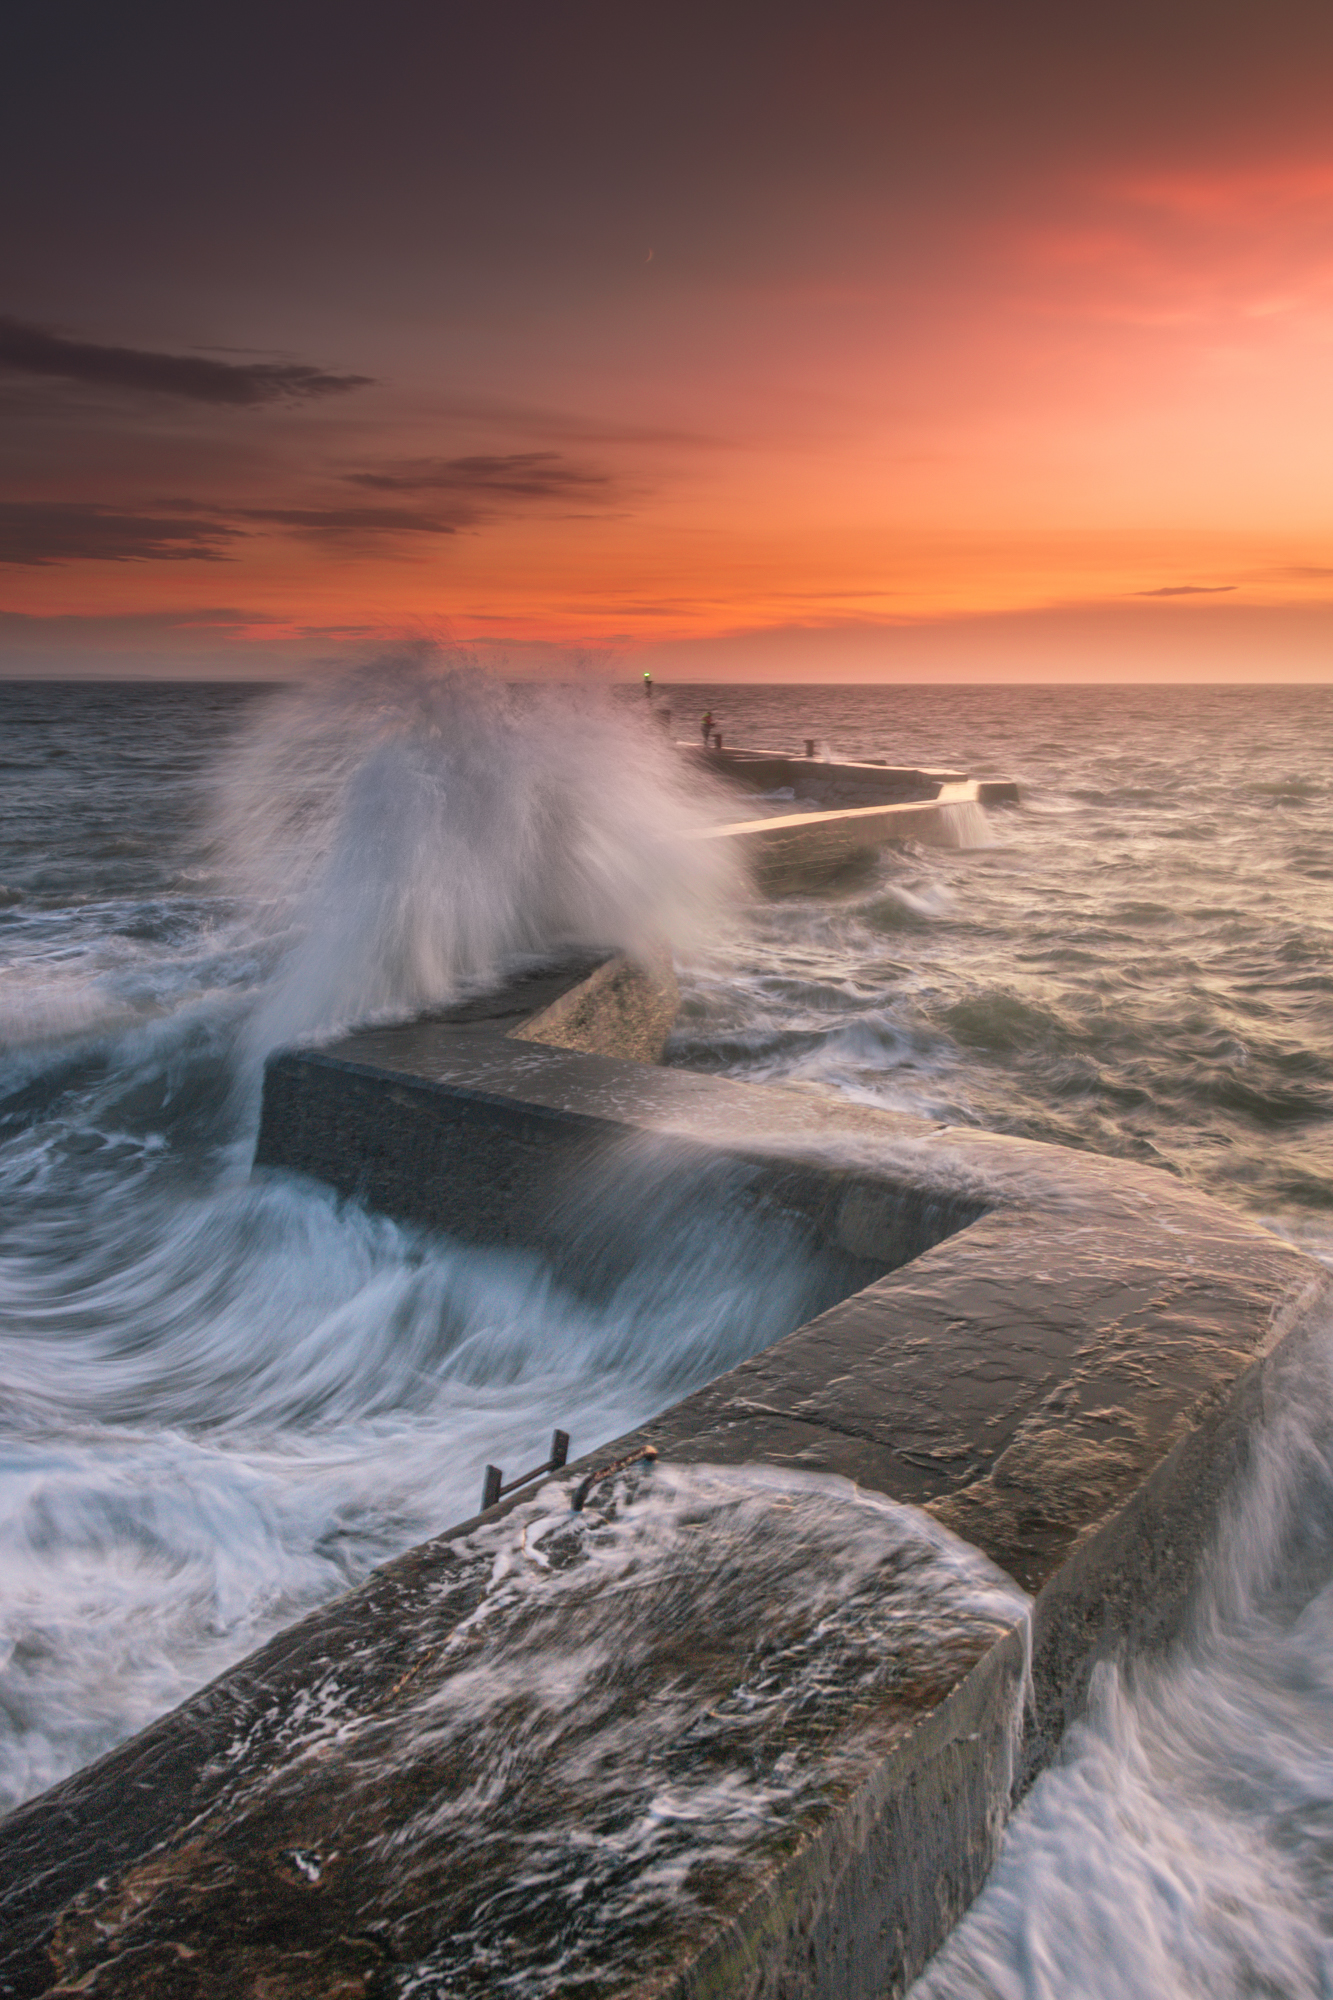 A December sunset on a windy day at The Blocks, St Monans. The Blocks is also known as the zig zag pier. A popular spot with photographers.